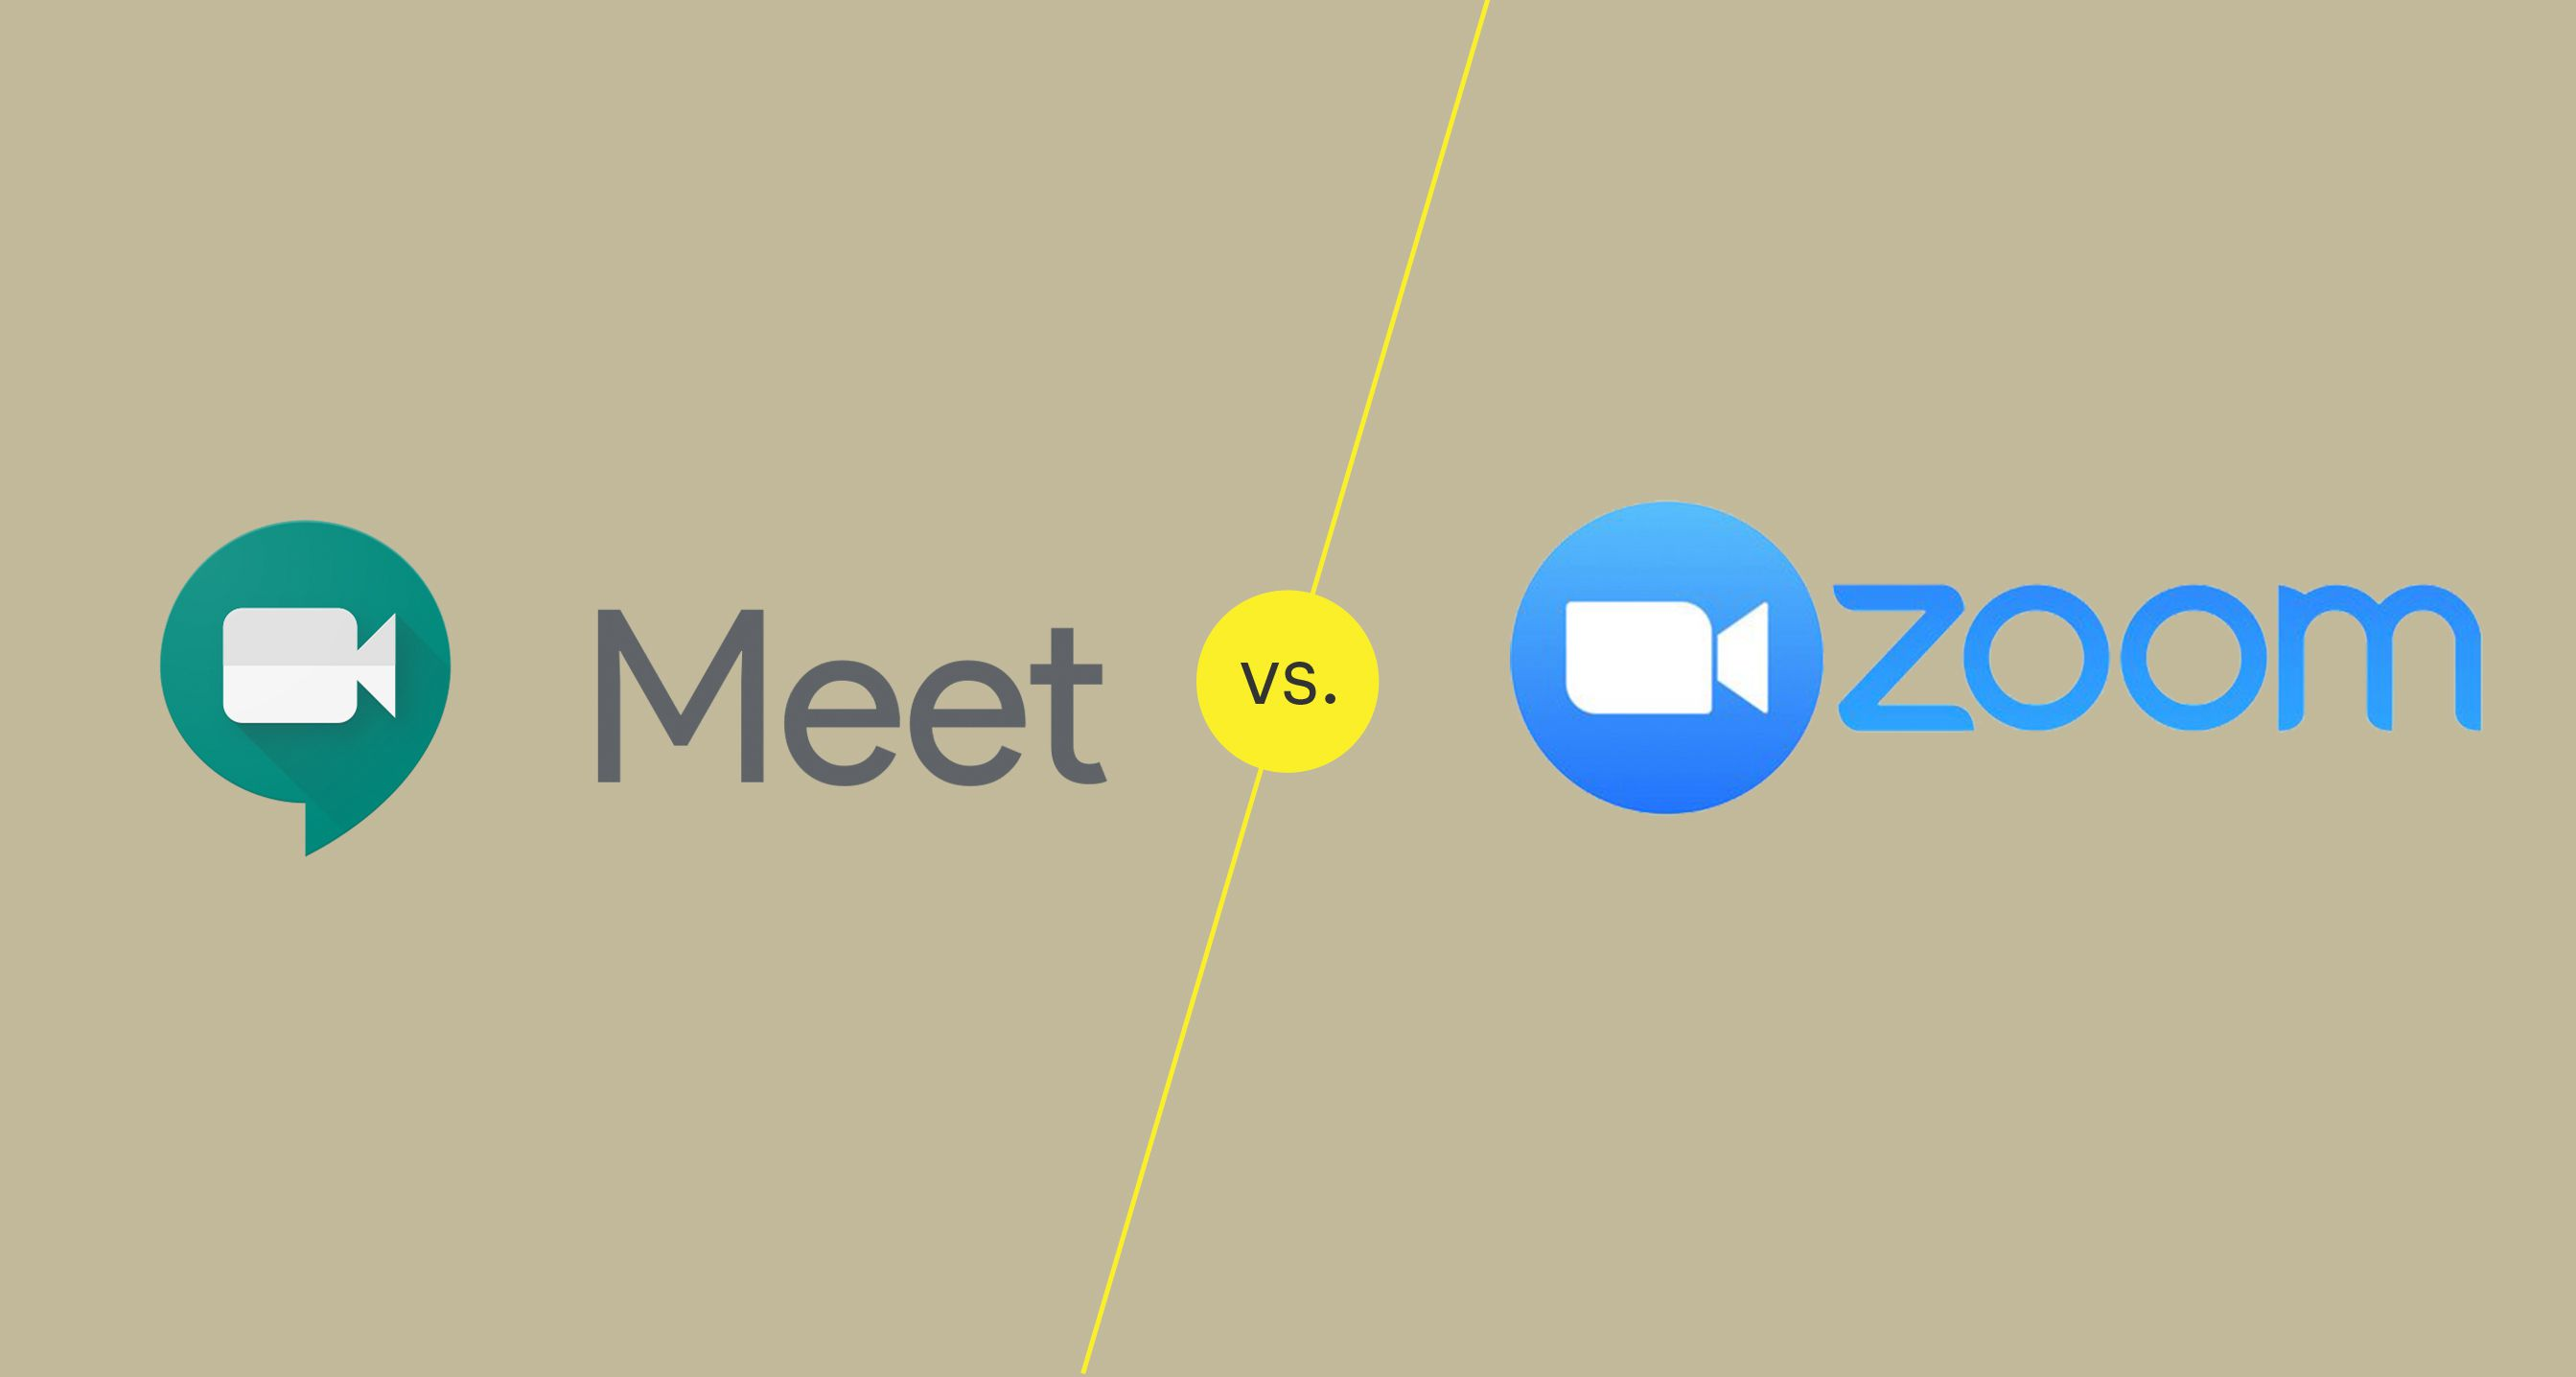 Google Meet vs. Zoom: What's the Difference?